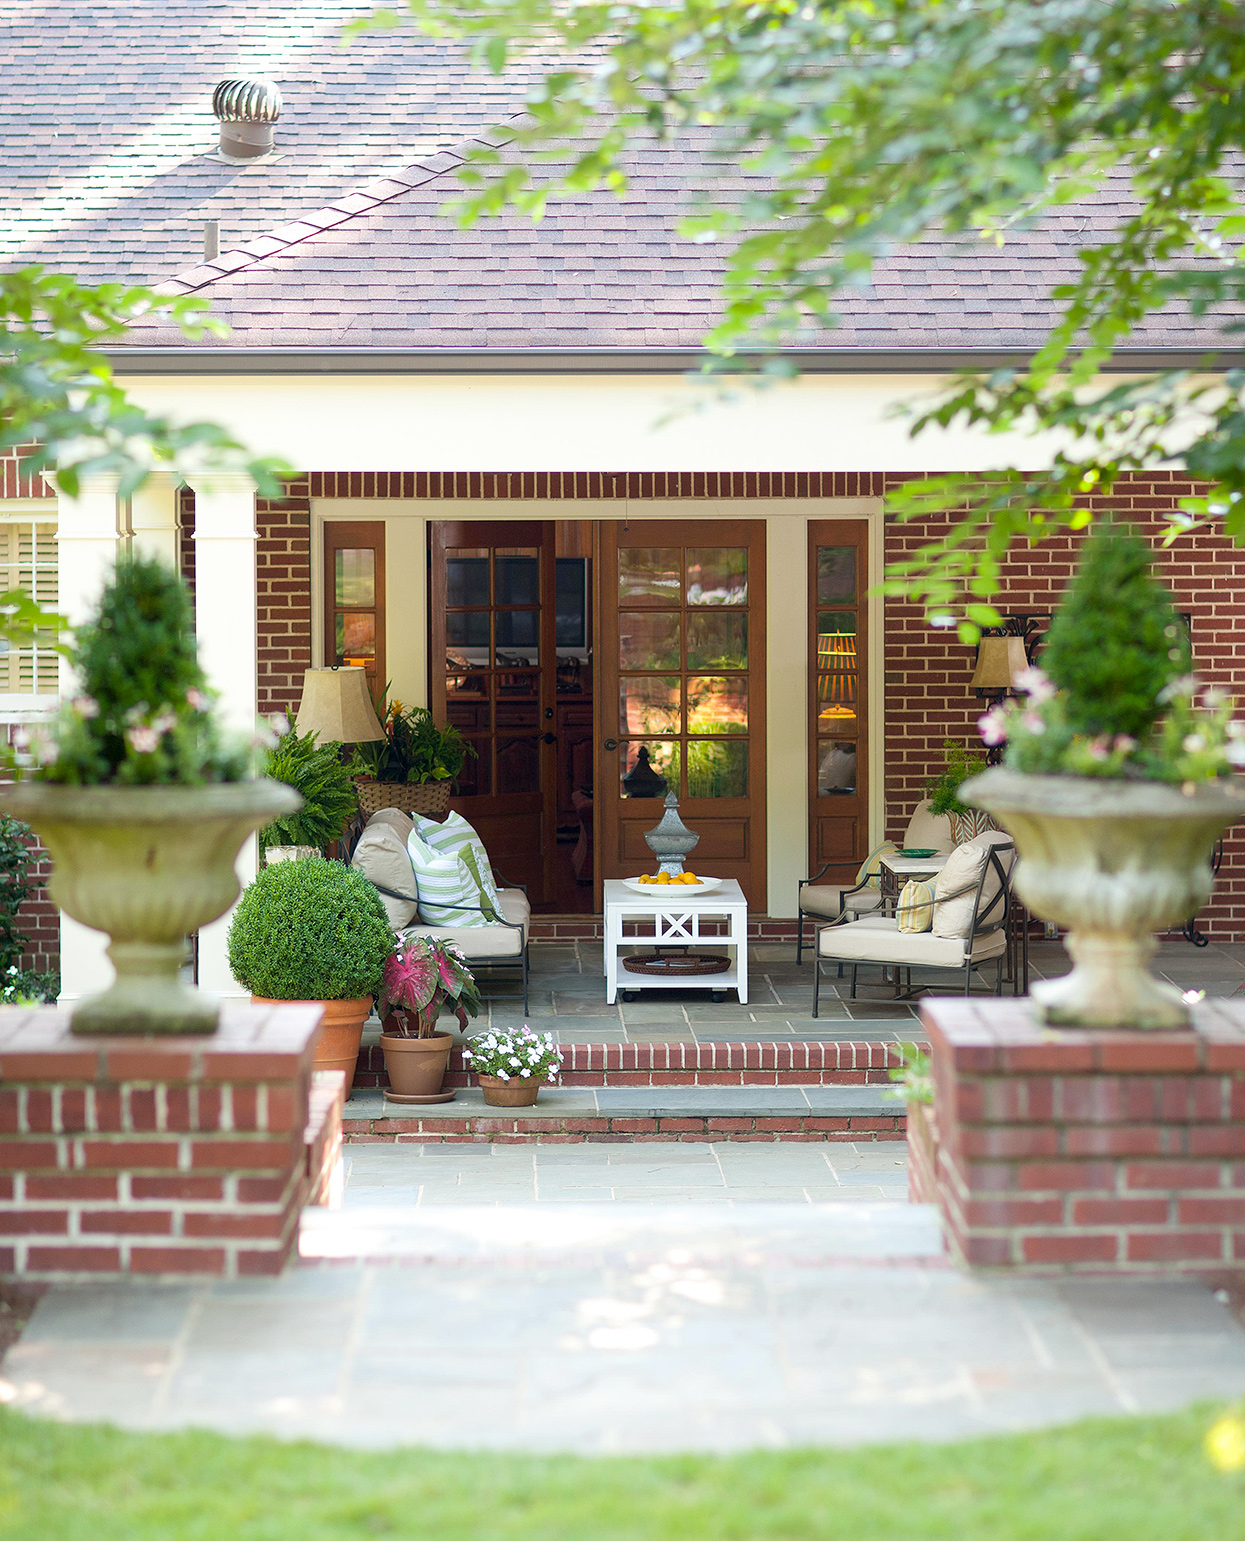 traditional tucked-away patio on brick facade